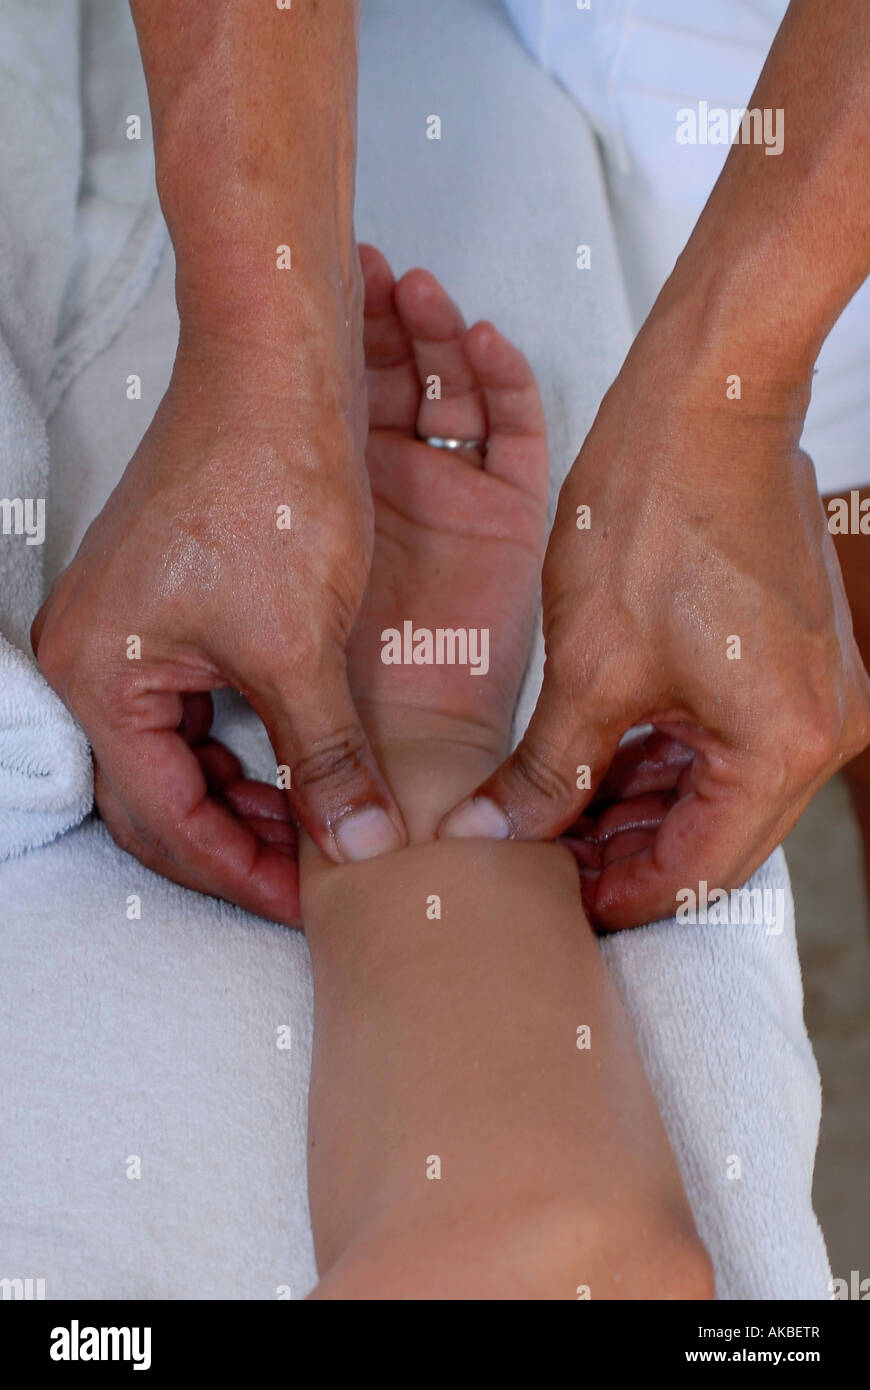 Finger pressure point on a wrist during a massage session - Stock Image